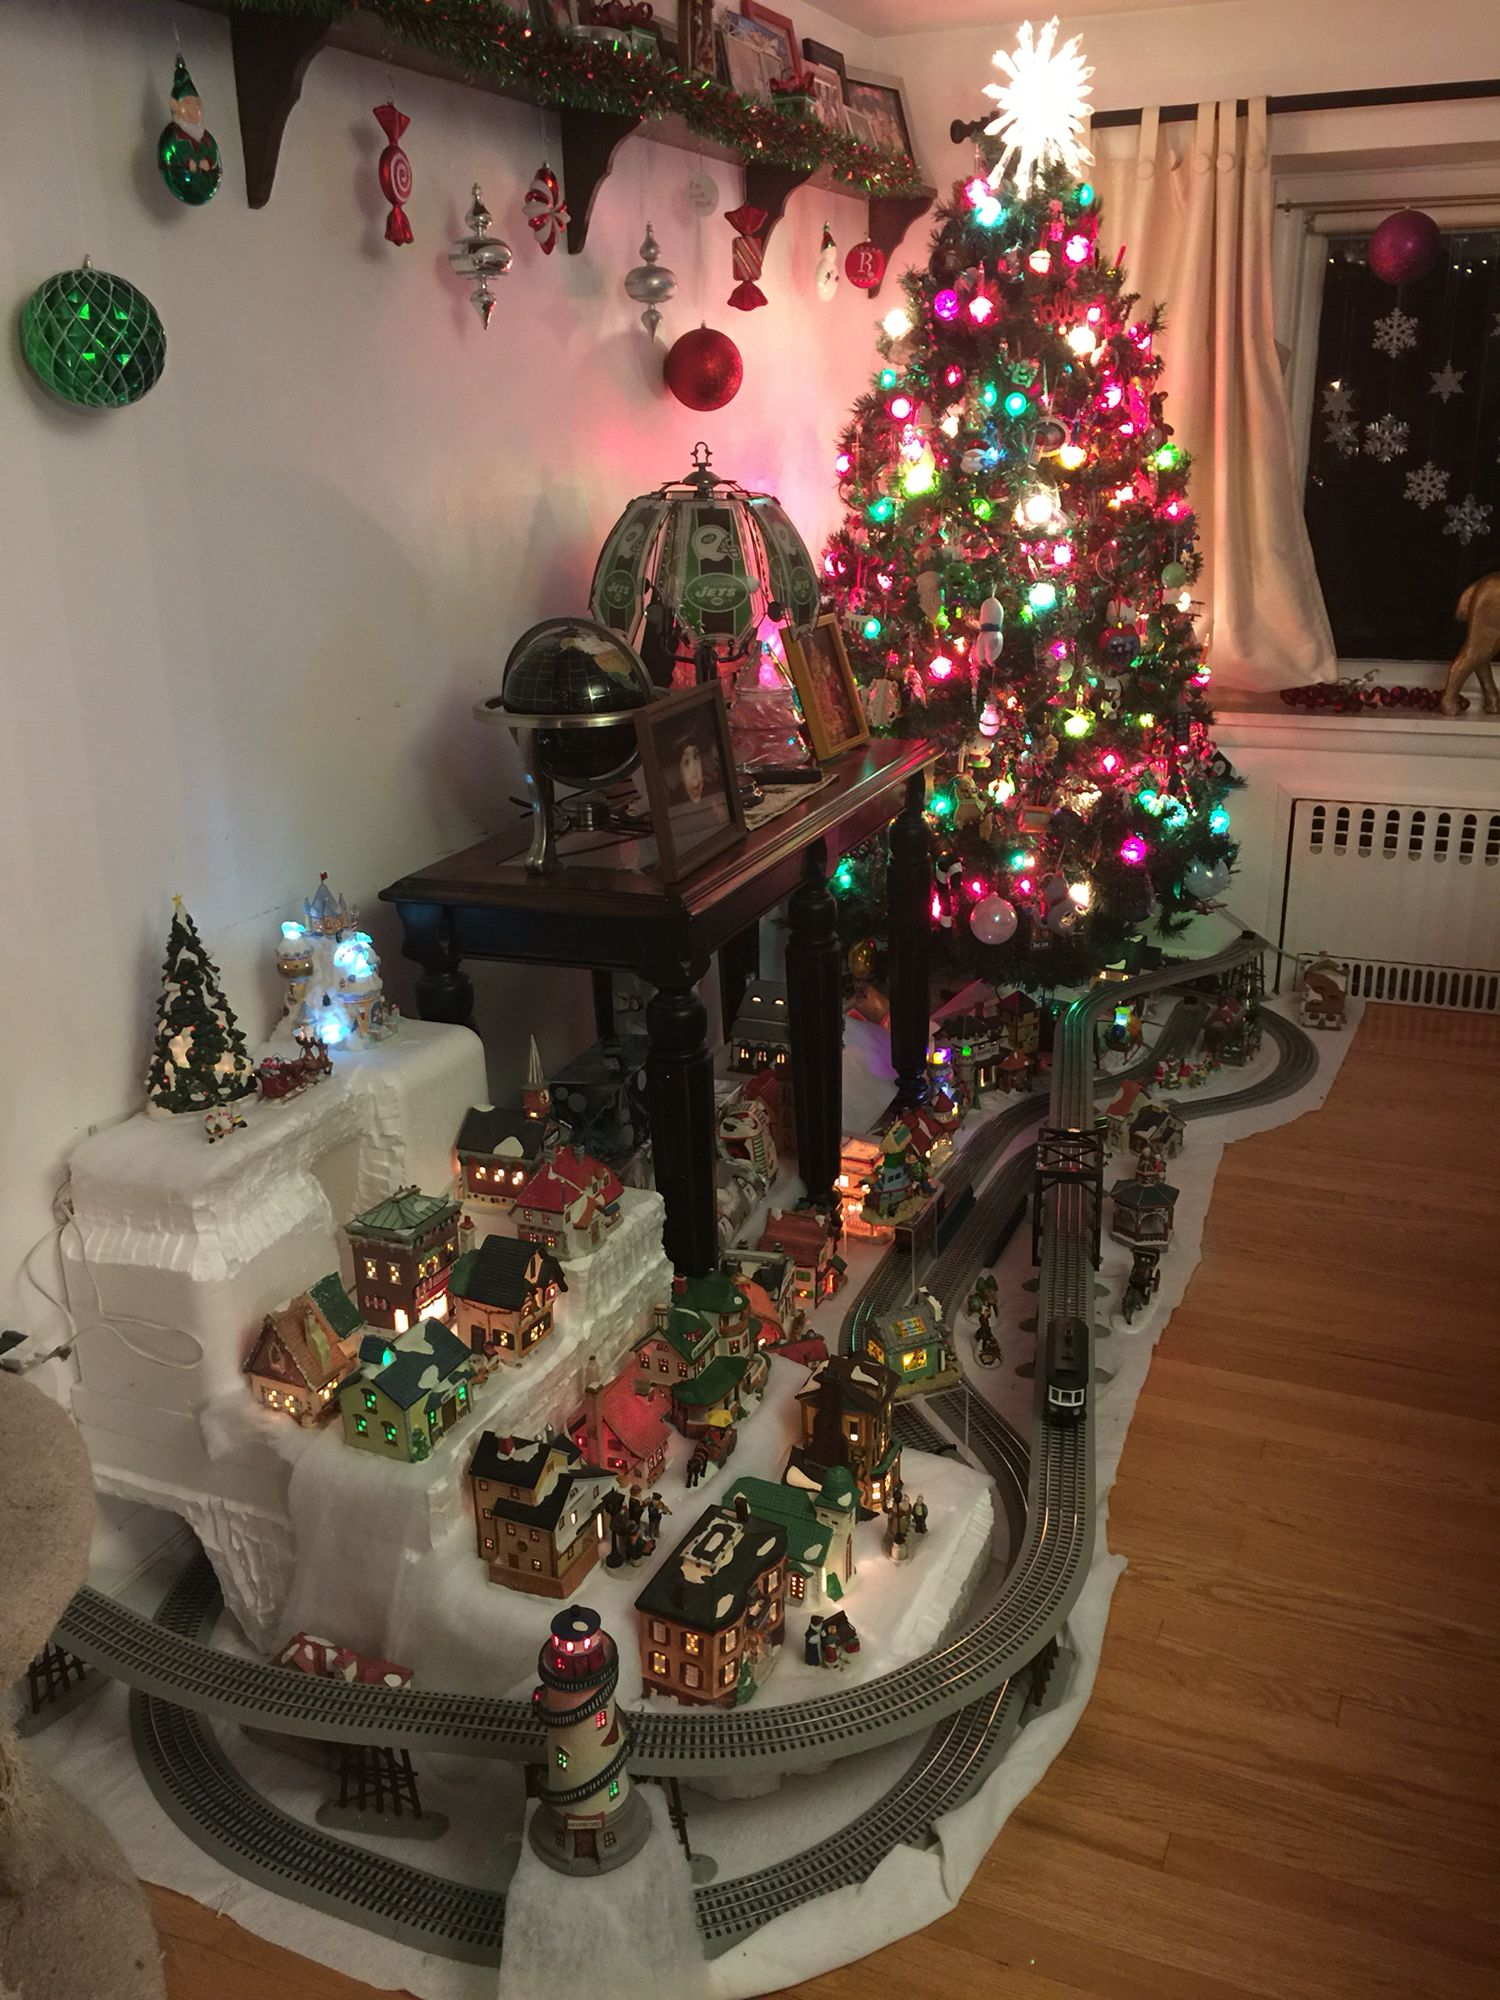 My Christmas Lionel train layout